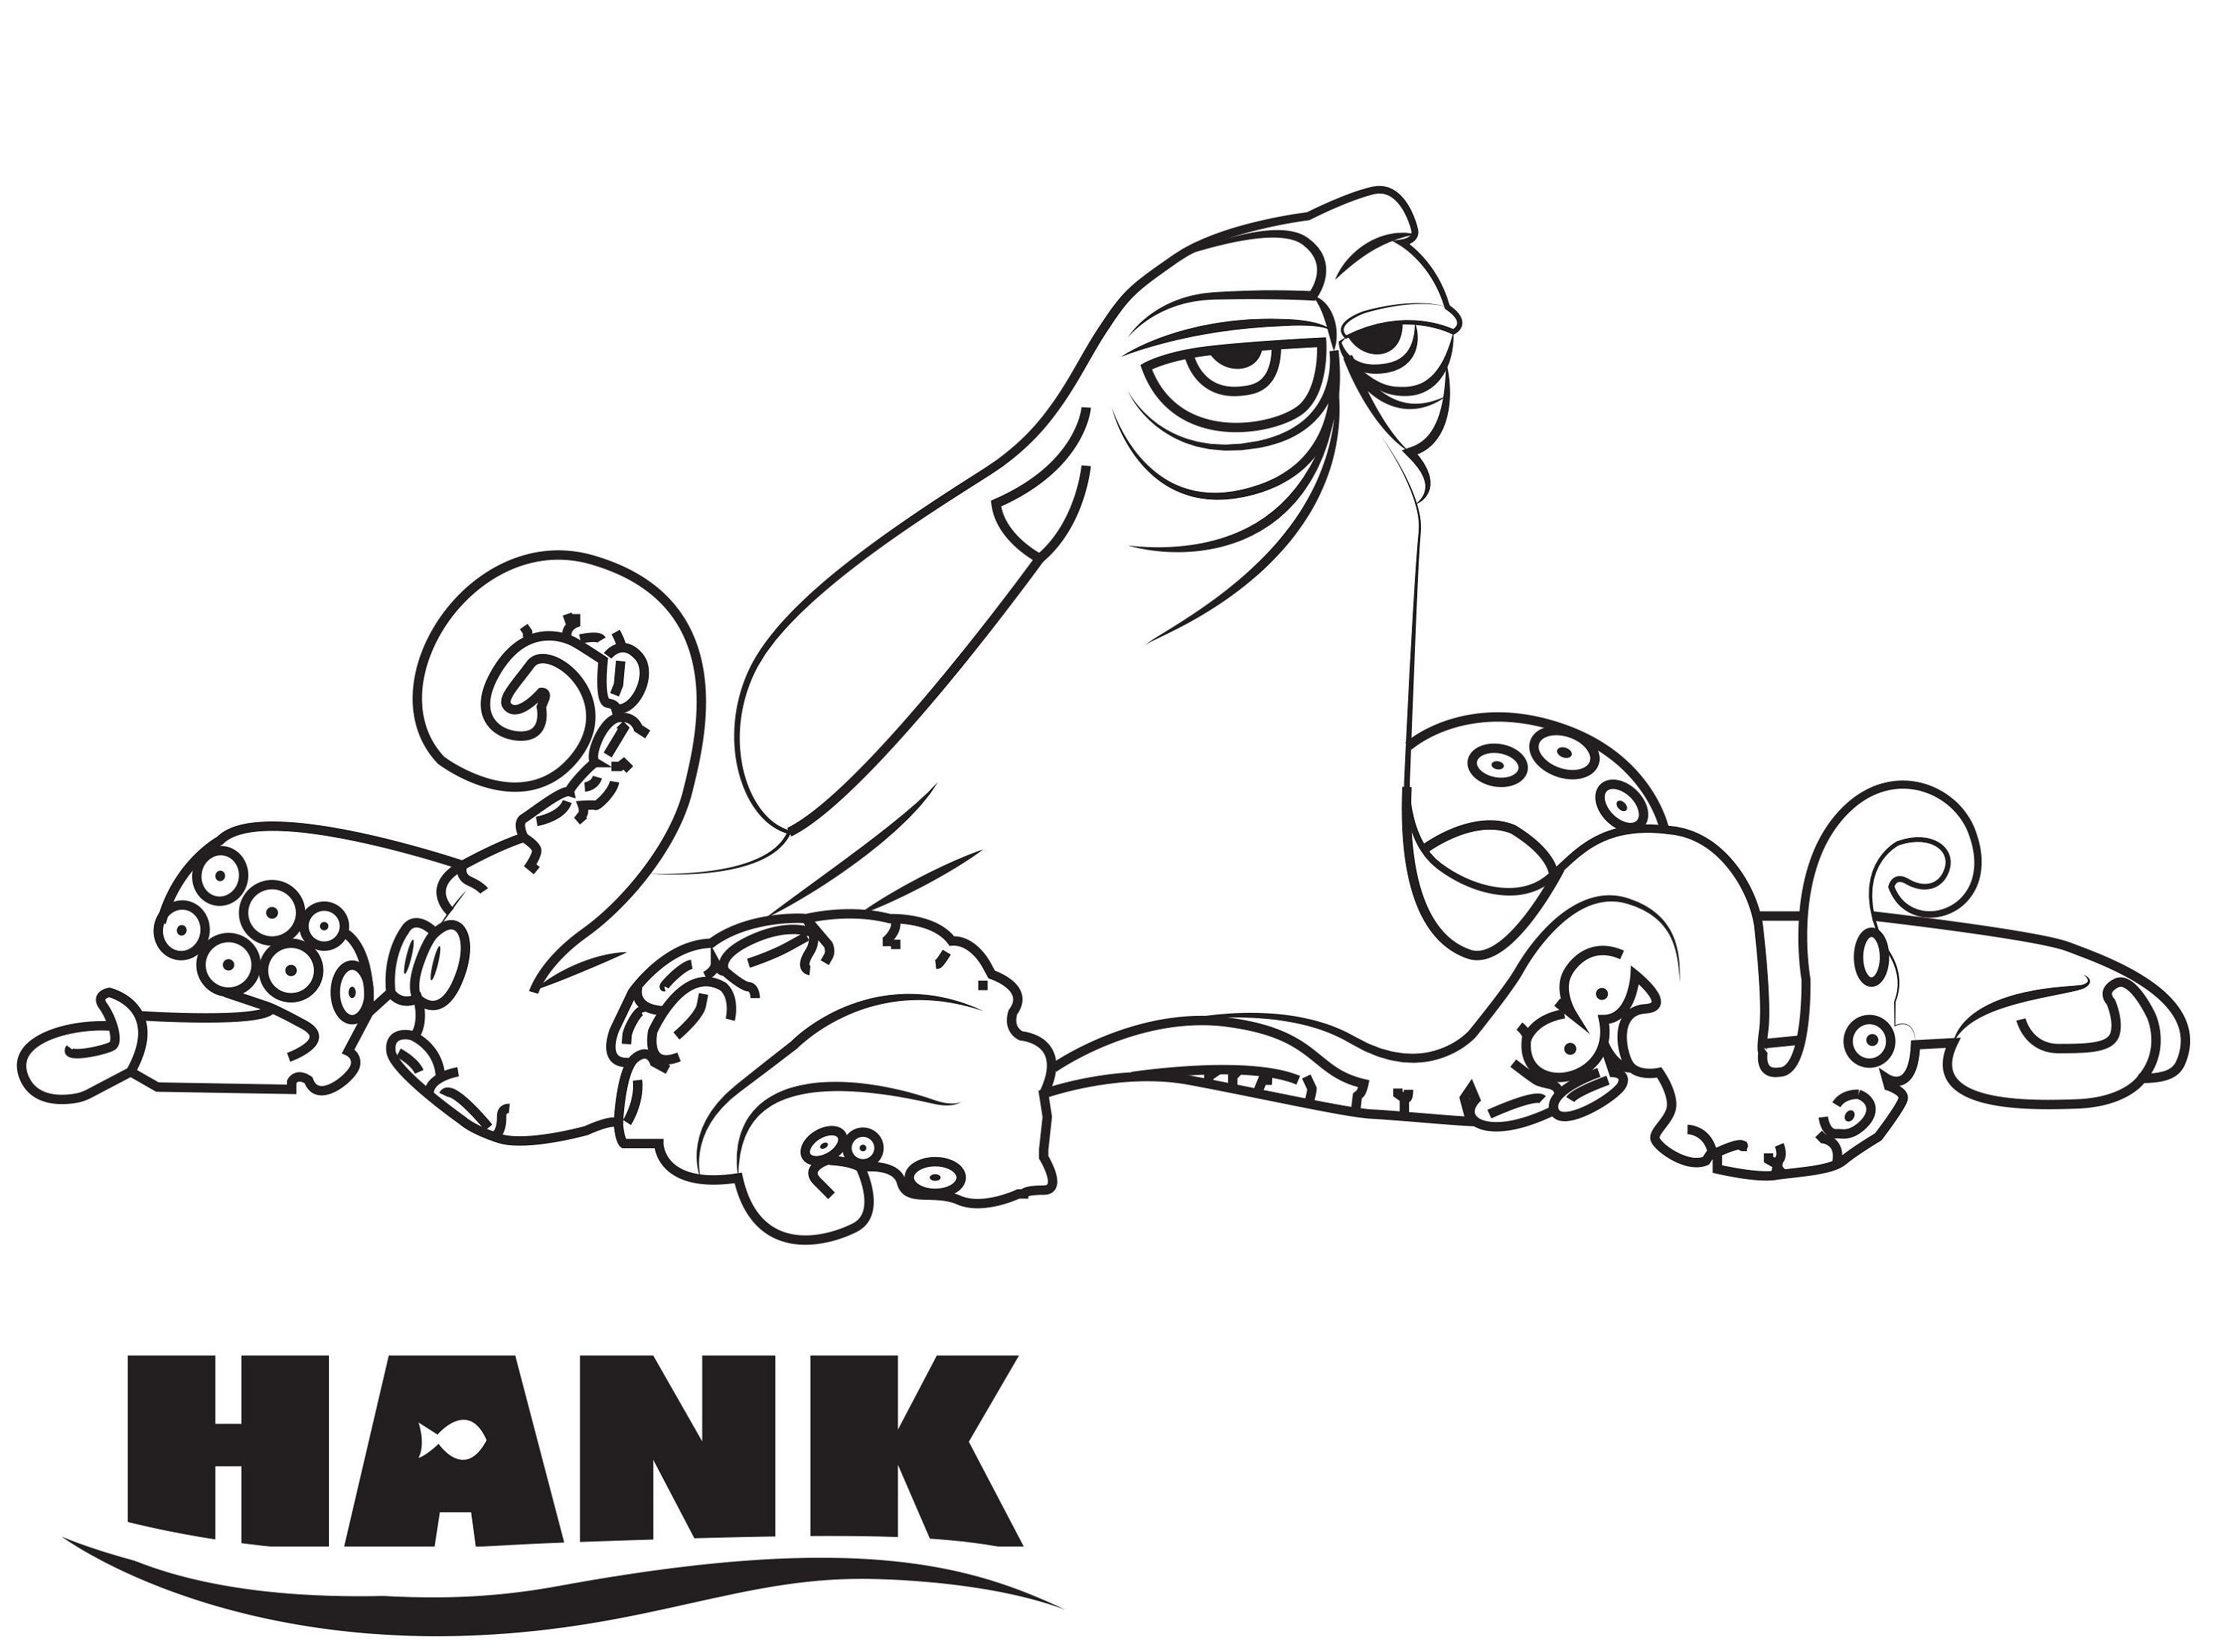 Finding Dory Coloring Pages Hank Educative Printable Finding Nemo Coloring Pages Nemo Coloring Pages Coloring Books